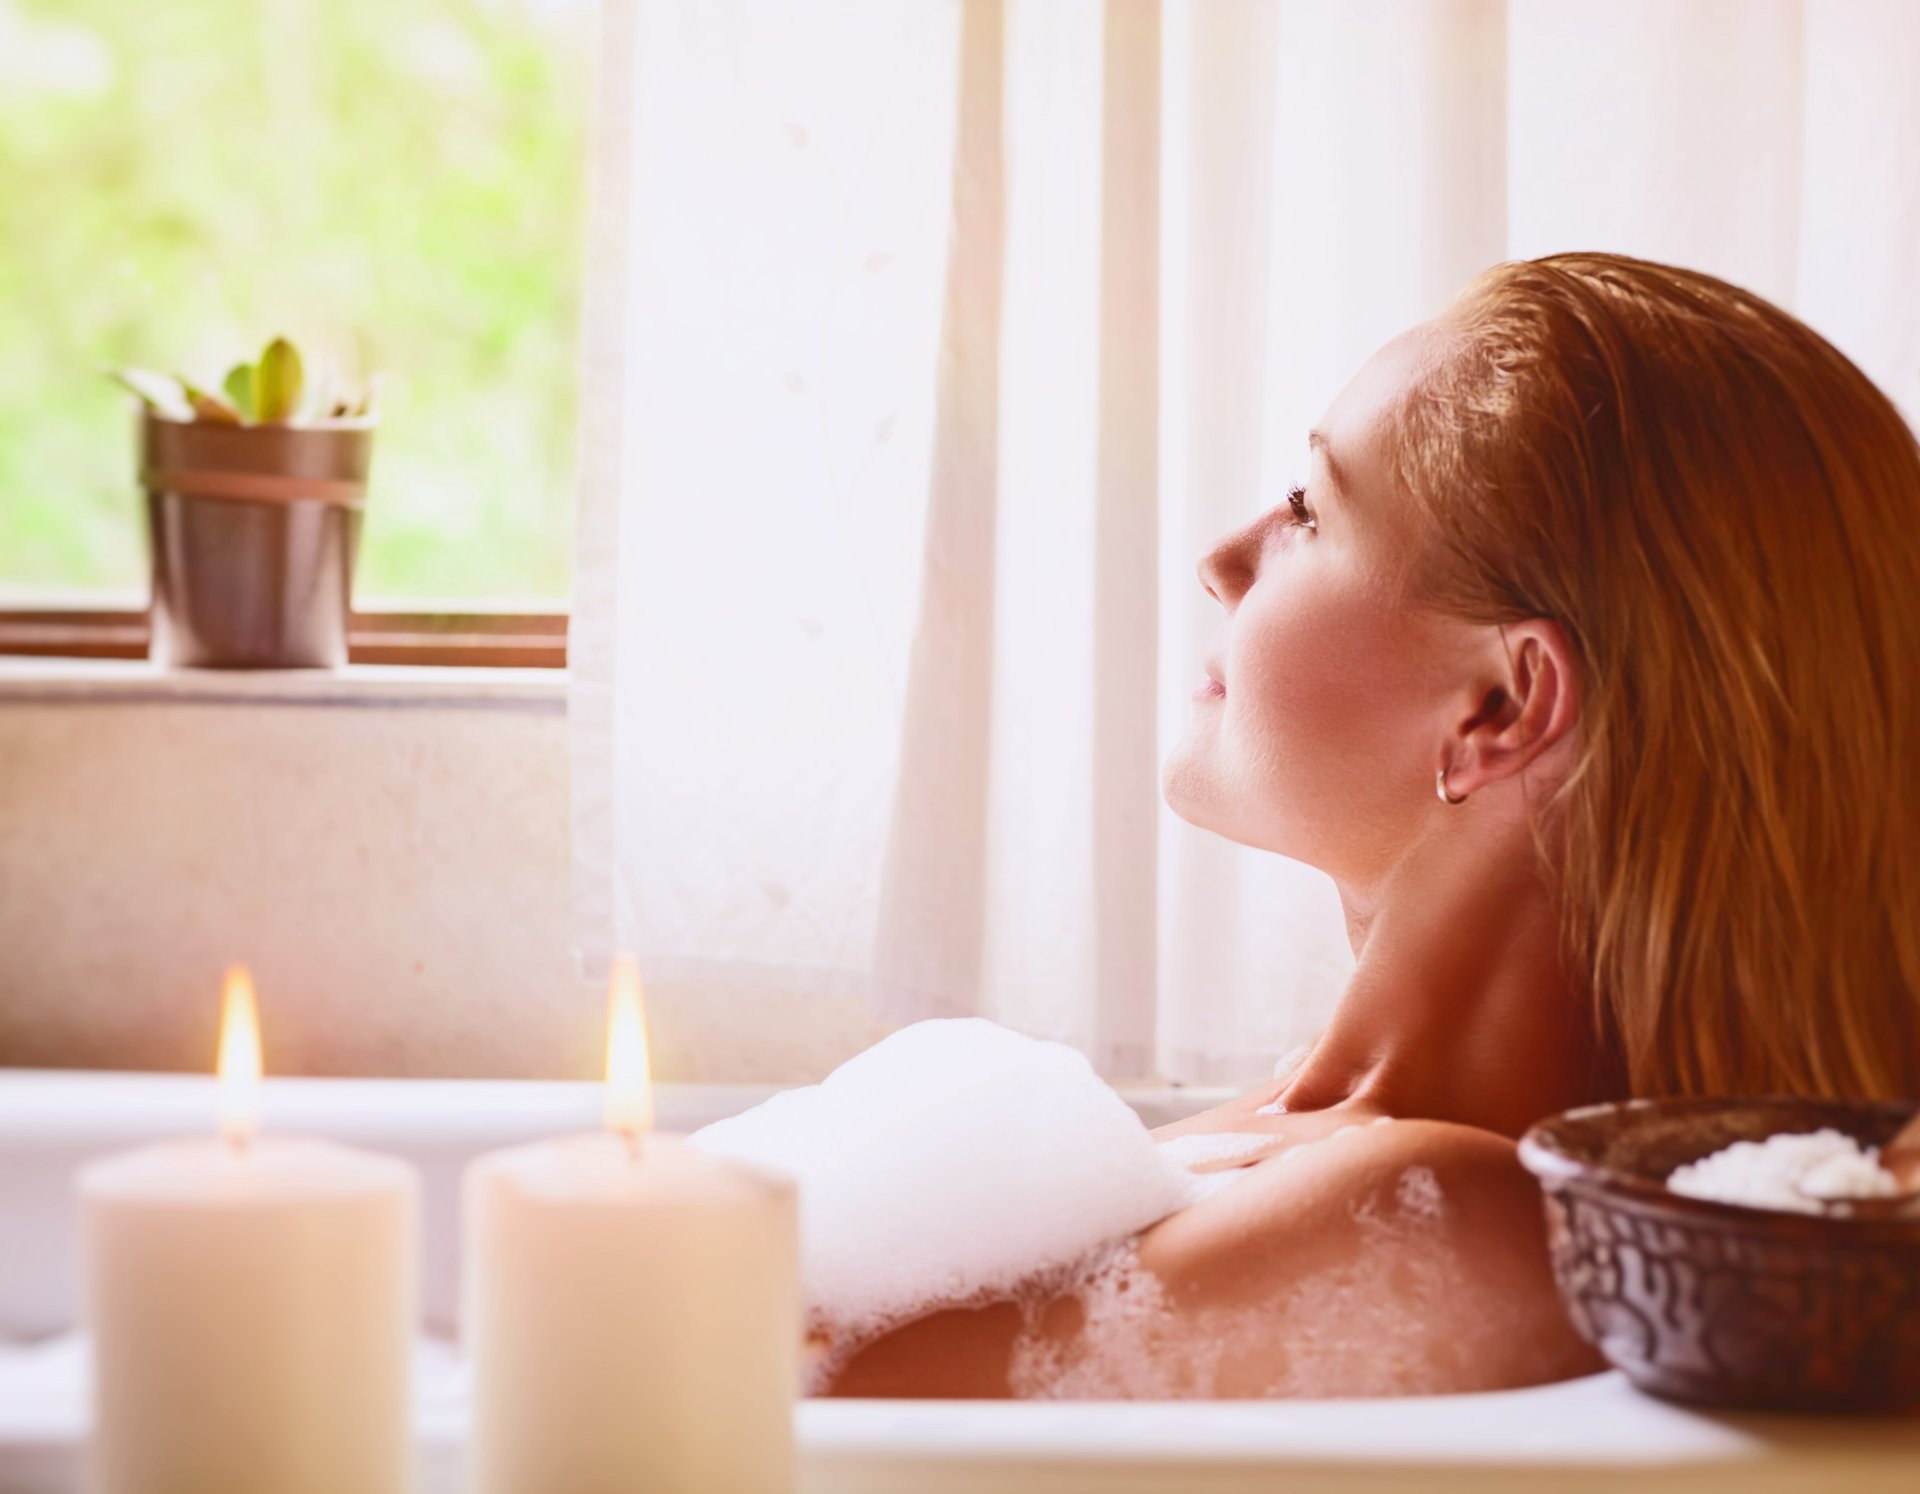 A young woman relaxes in the bath tub with candles